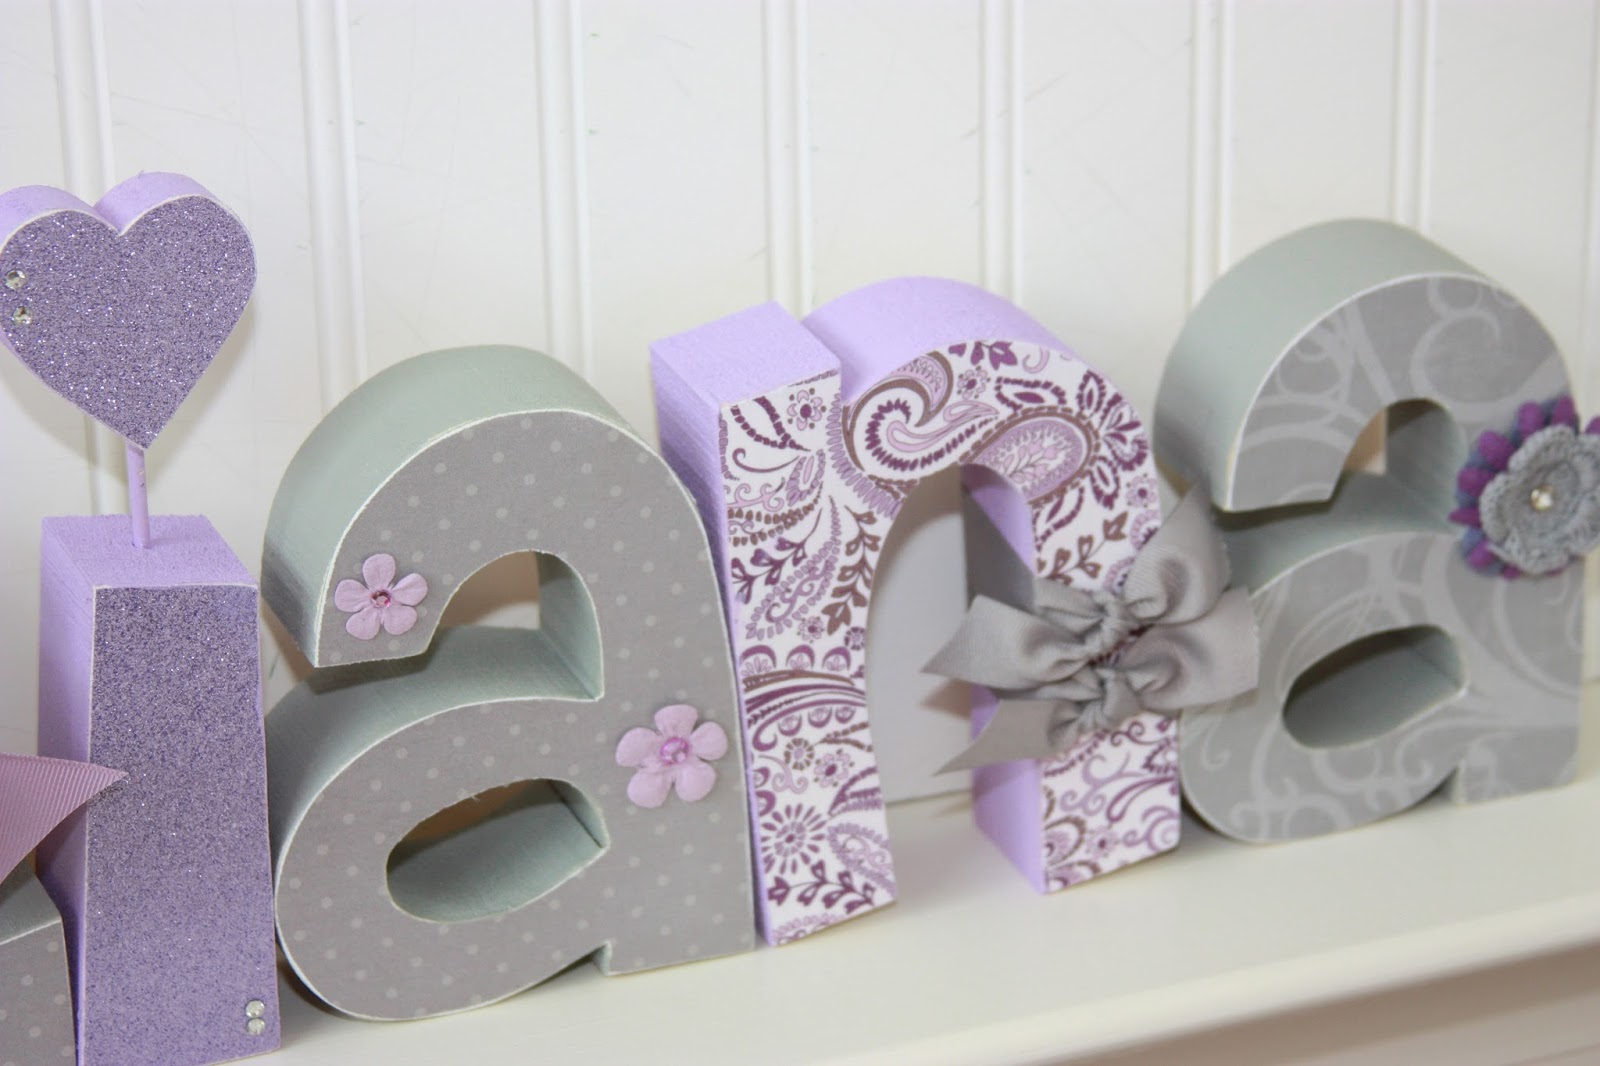 Dotted Cross Designs New Freestanding Wood Letters